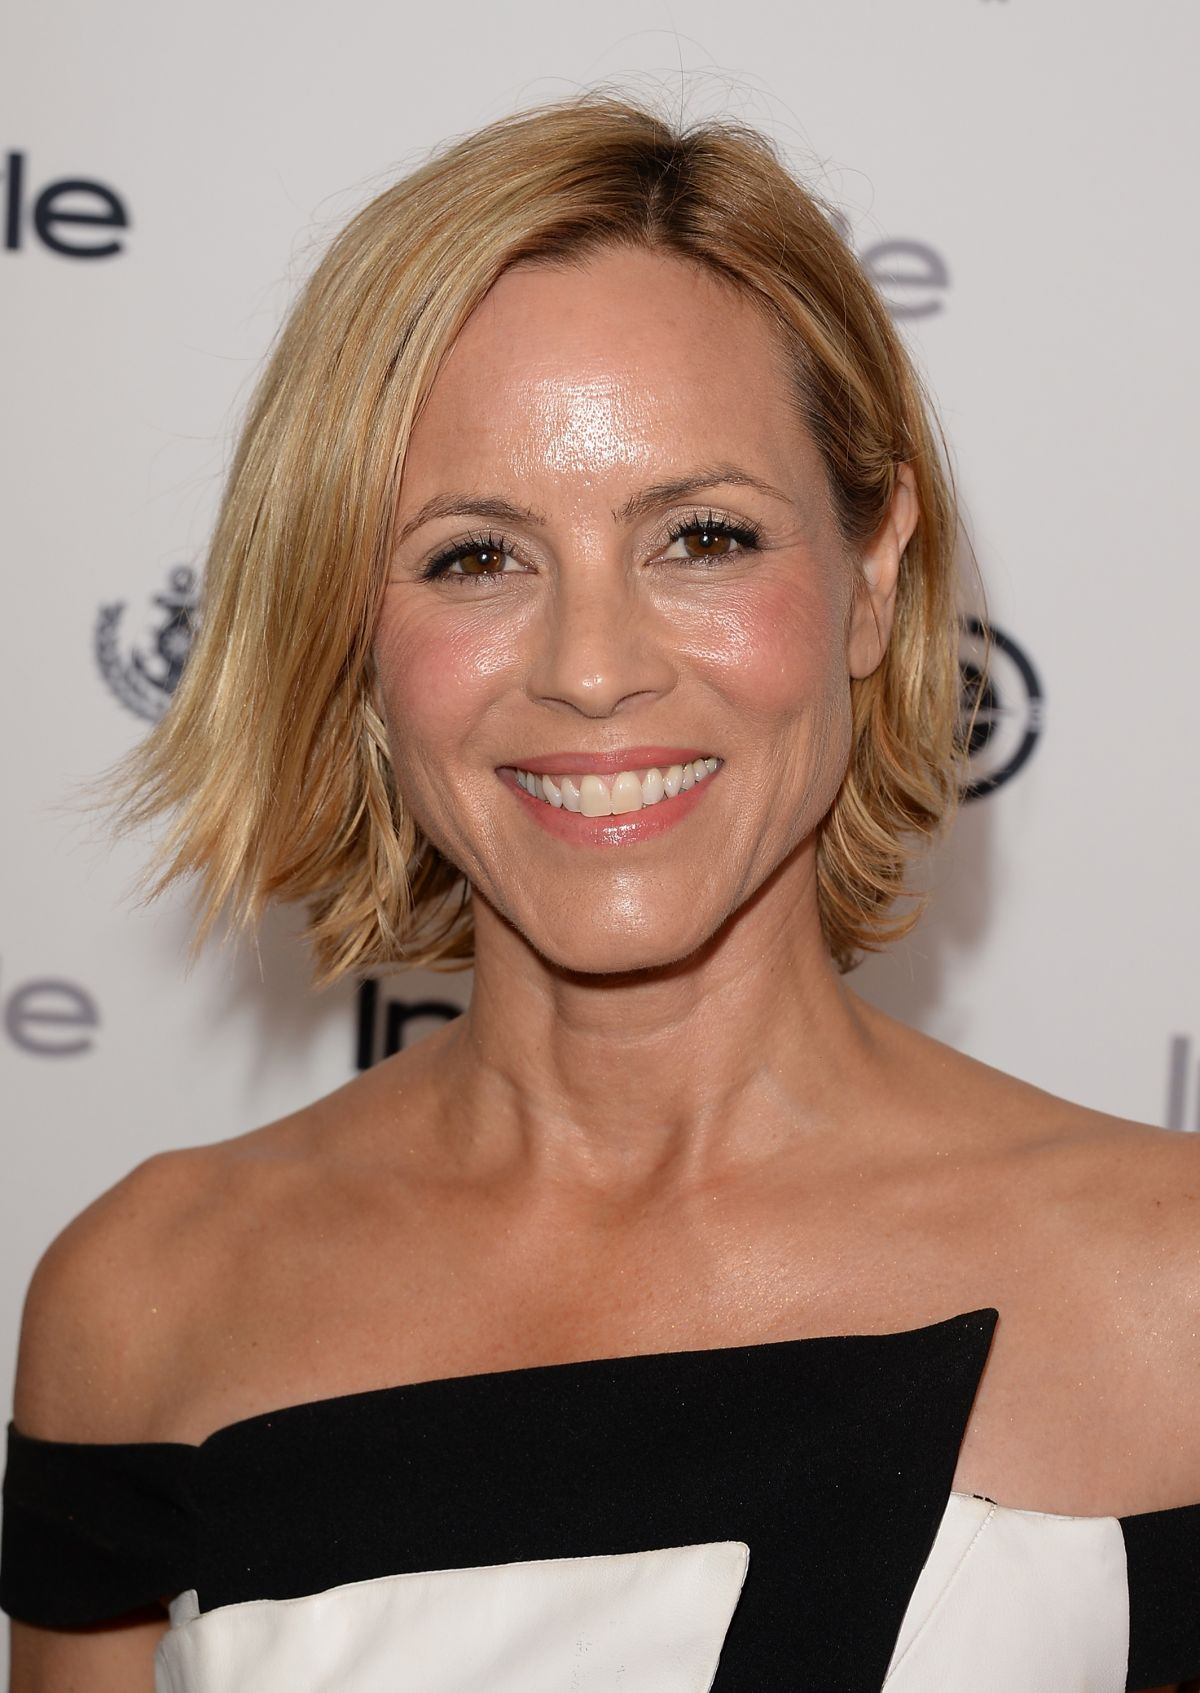 maria-bello-at-instyle-summer-soiree-short-hair-medium-size-side-ways-shinny-forehead